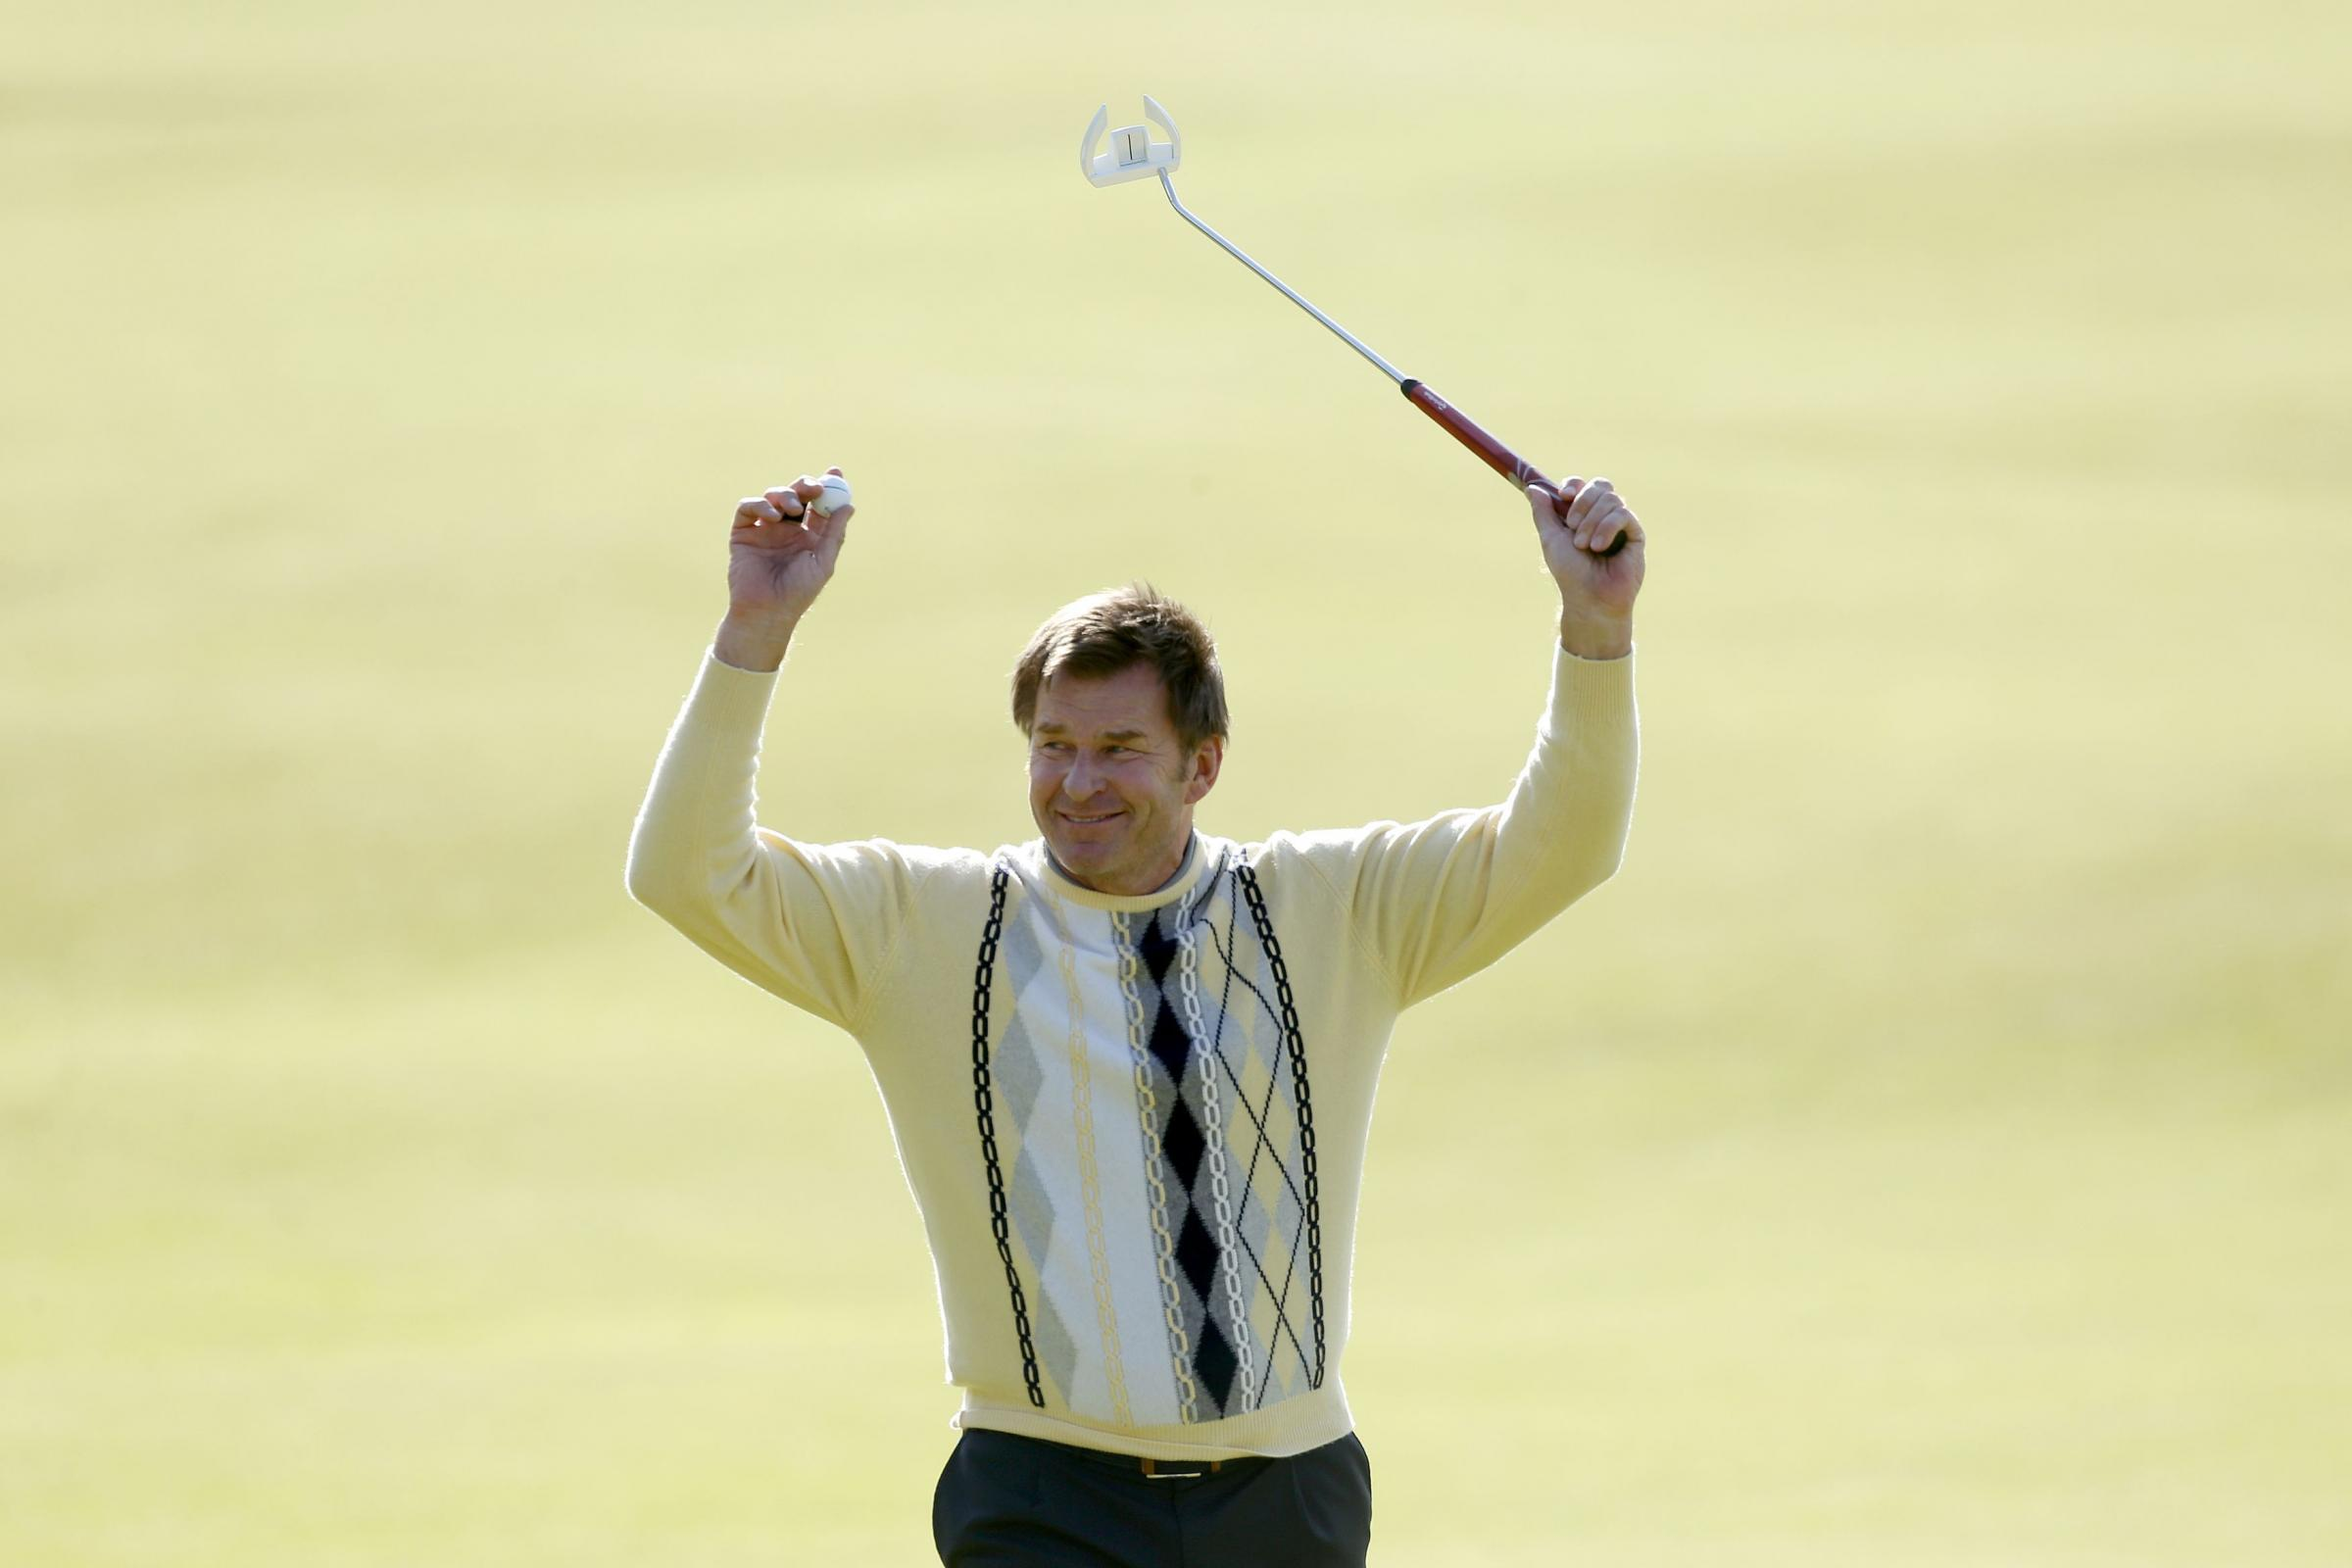 BIRTHDAY: Sir Nick Faldo turns 60 this month and will celebrate by playing the Senior Open Championship at Royal Porthcawl